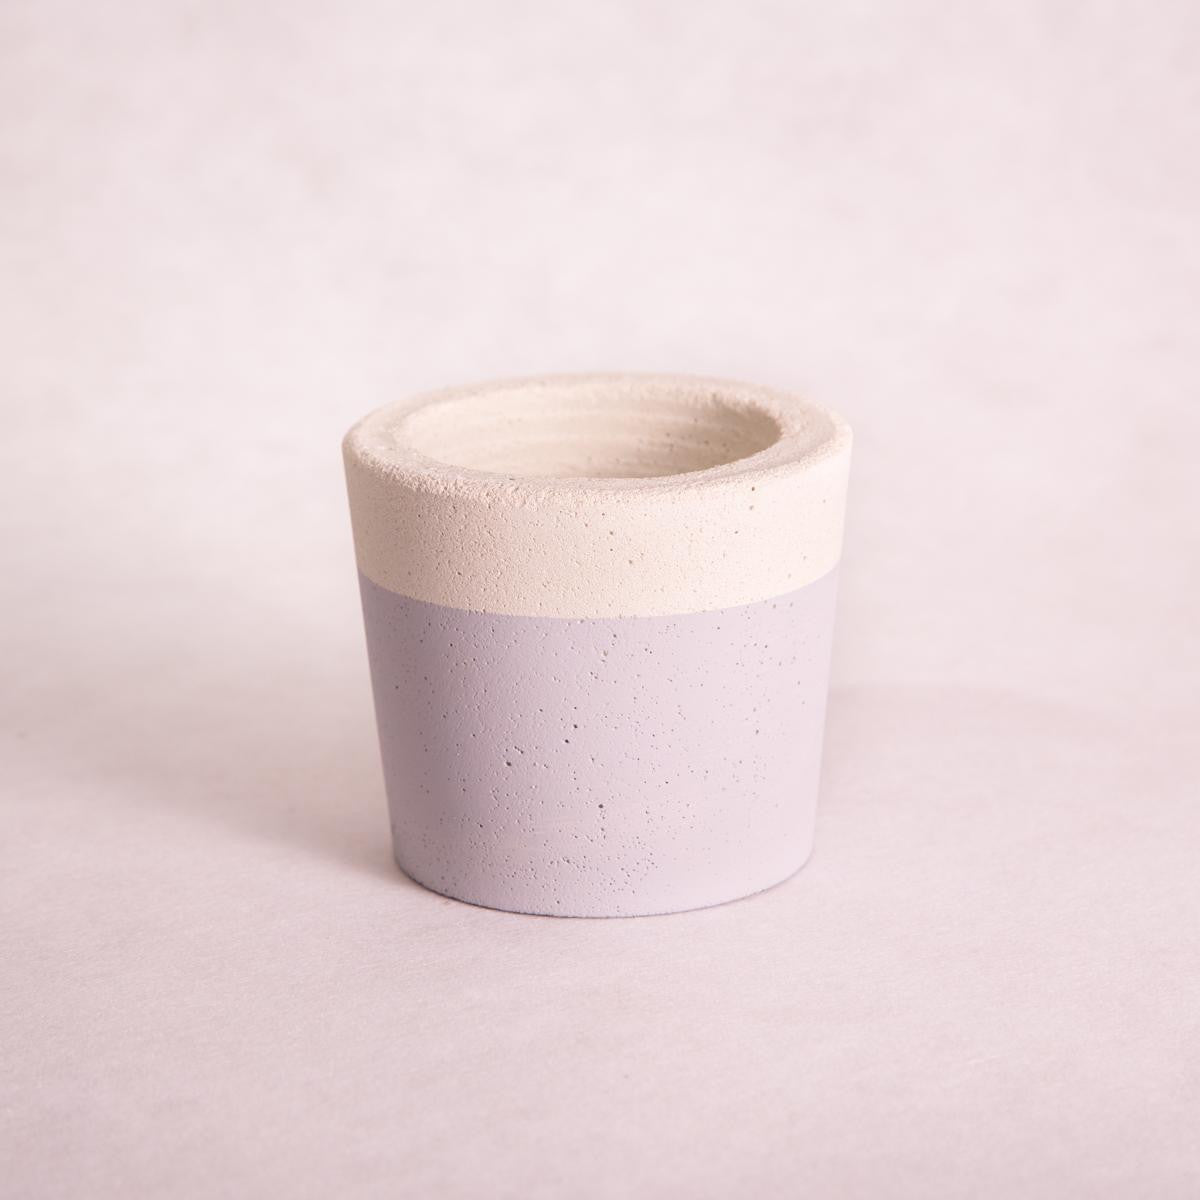 Tub Concrete Planters - Painted (Assorted Colours!) - Concrete Planter - Throw Some Seeds - Australian gardening gifts and eco products online!